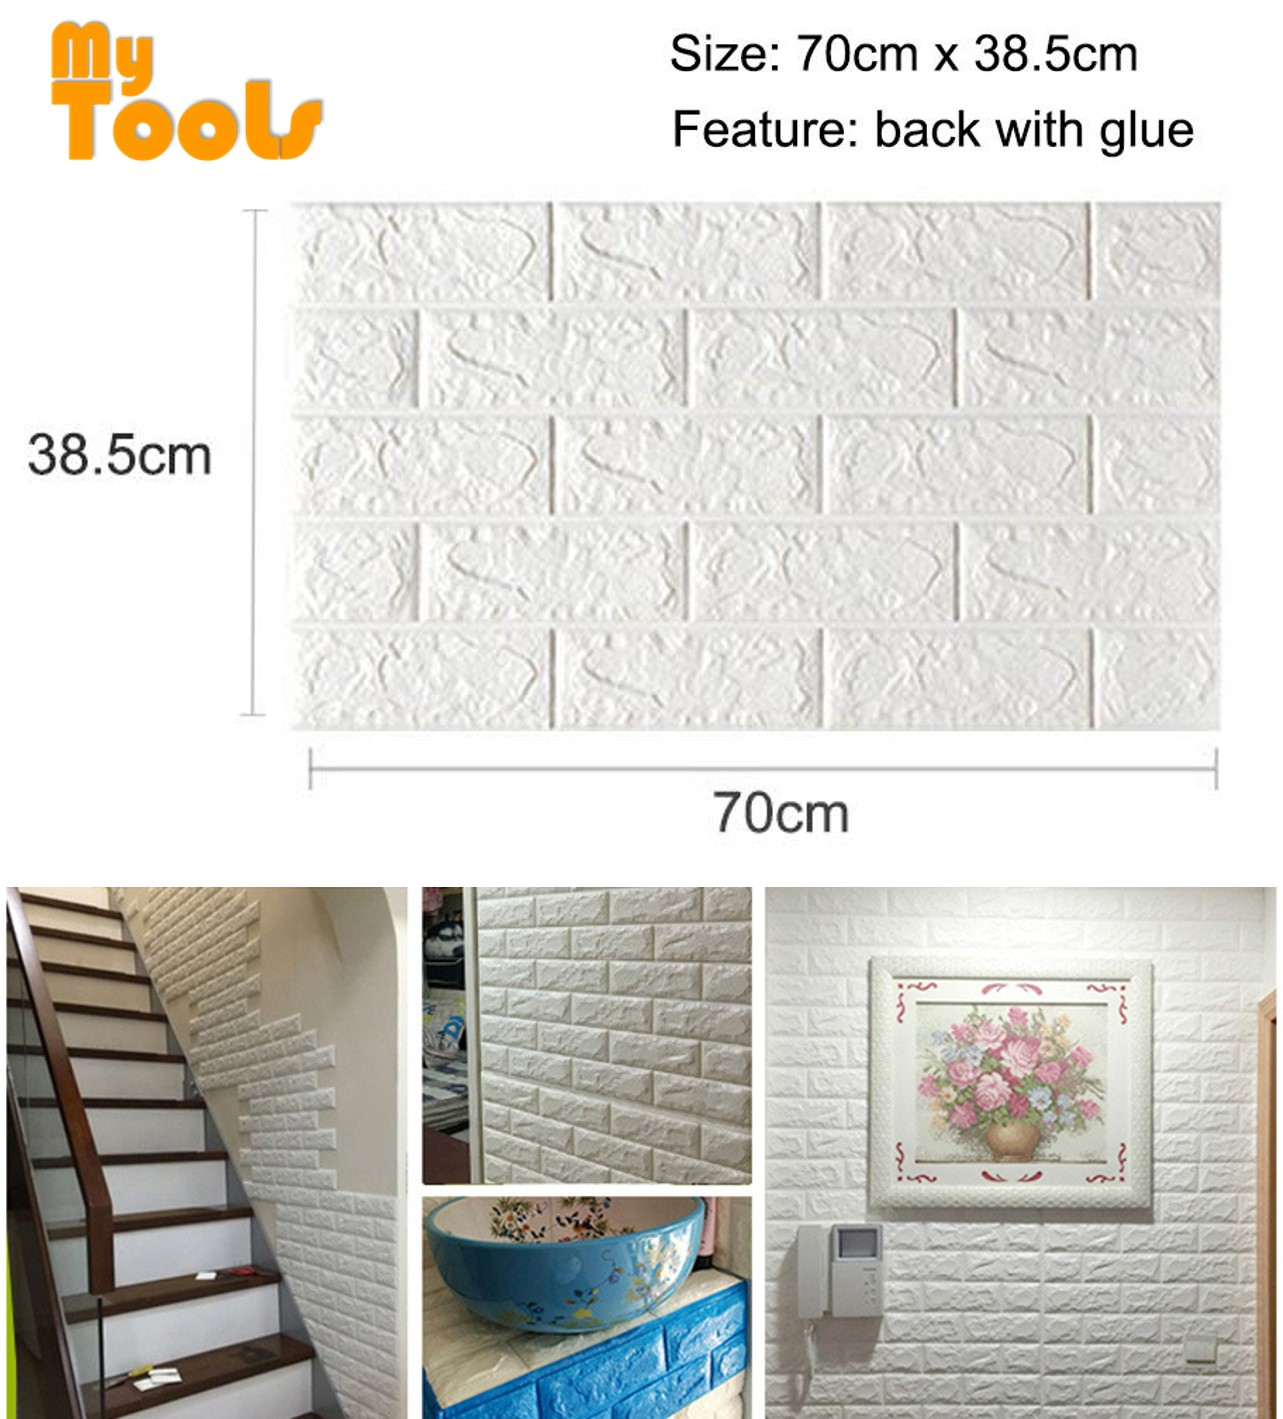 Mytools 1pc 70x39cm PE Foam 3D Wall Stickers Home Decor Wallpaper DIY Wall Brick Living Room Kids Bedroom Decorative Sticker